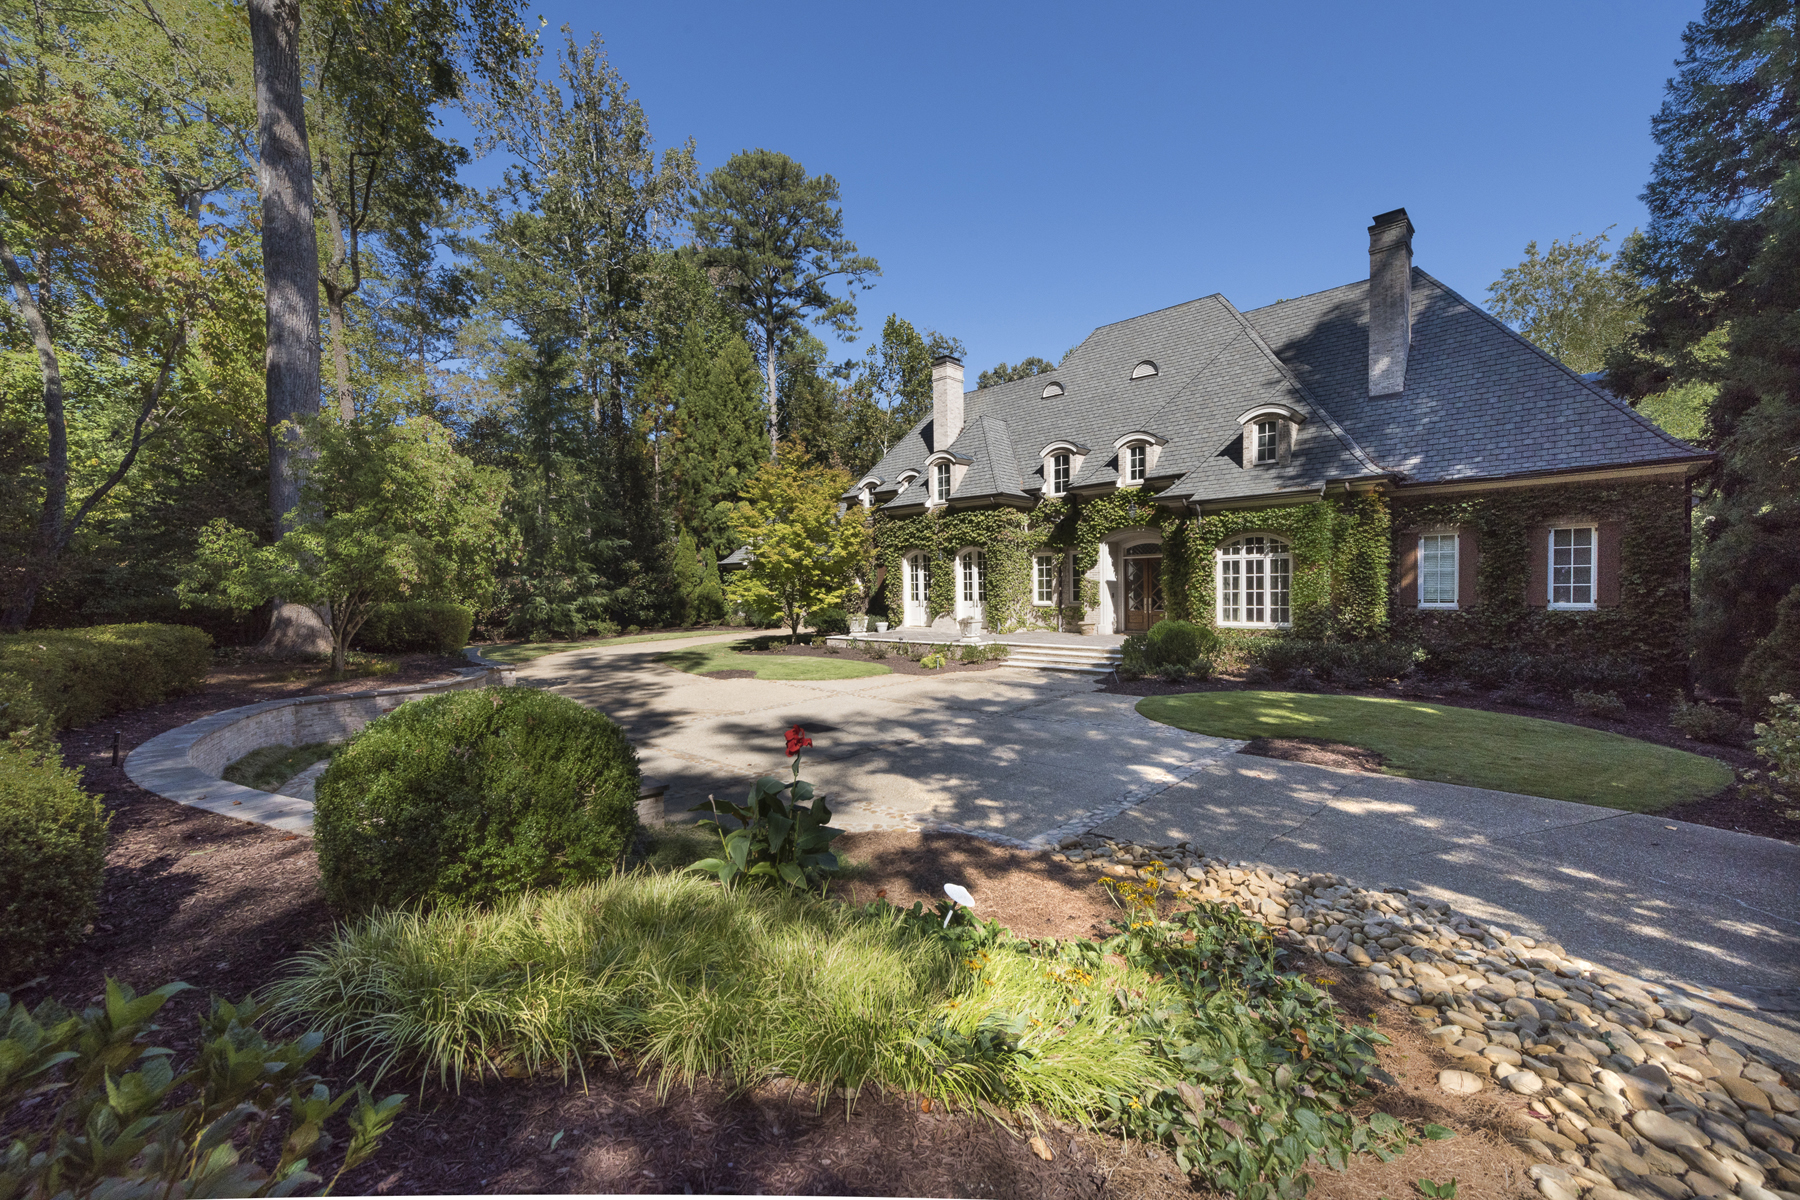 Частный односемейный дом для того Продажа на Gorgeous Gated Estate Property With Separate Large Guest House 714 W Conway Drive NW Buckhead, Atlanta, Джорджия, 30327 Соединенные Штаты